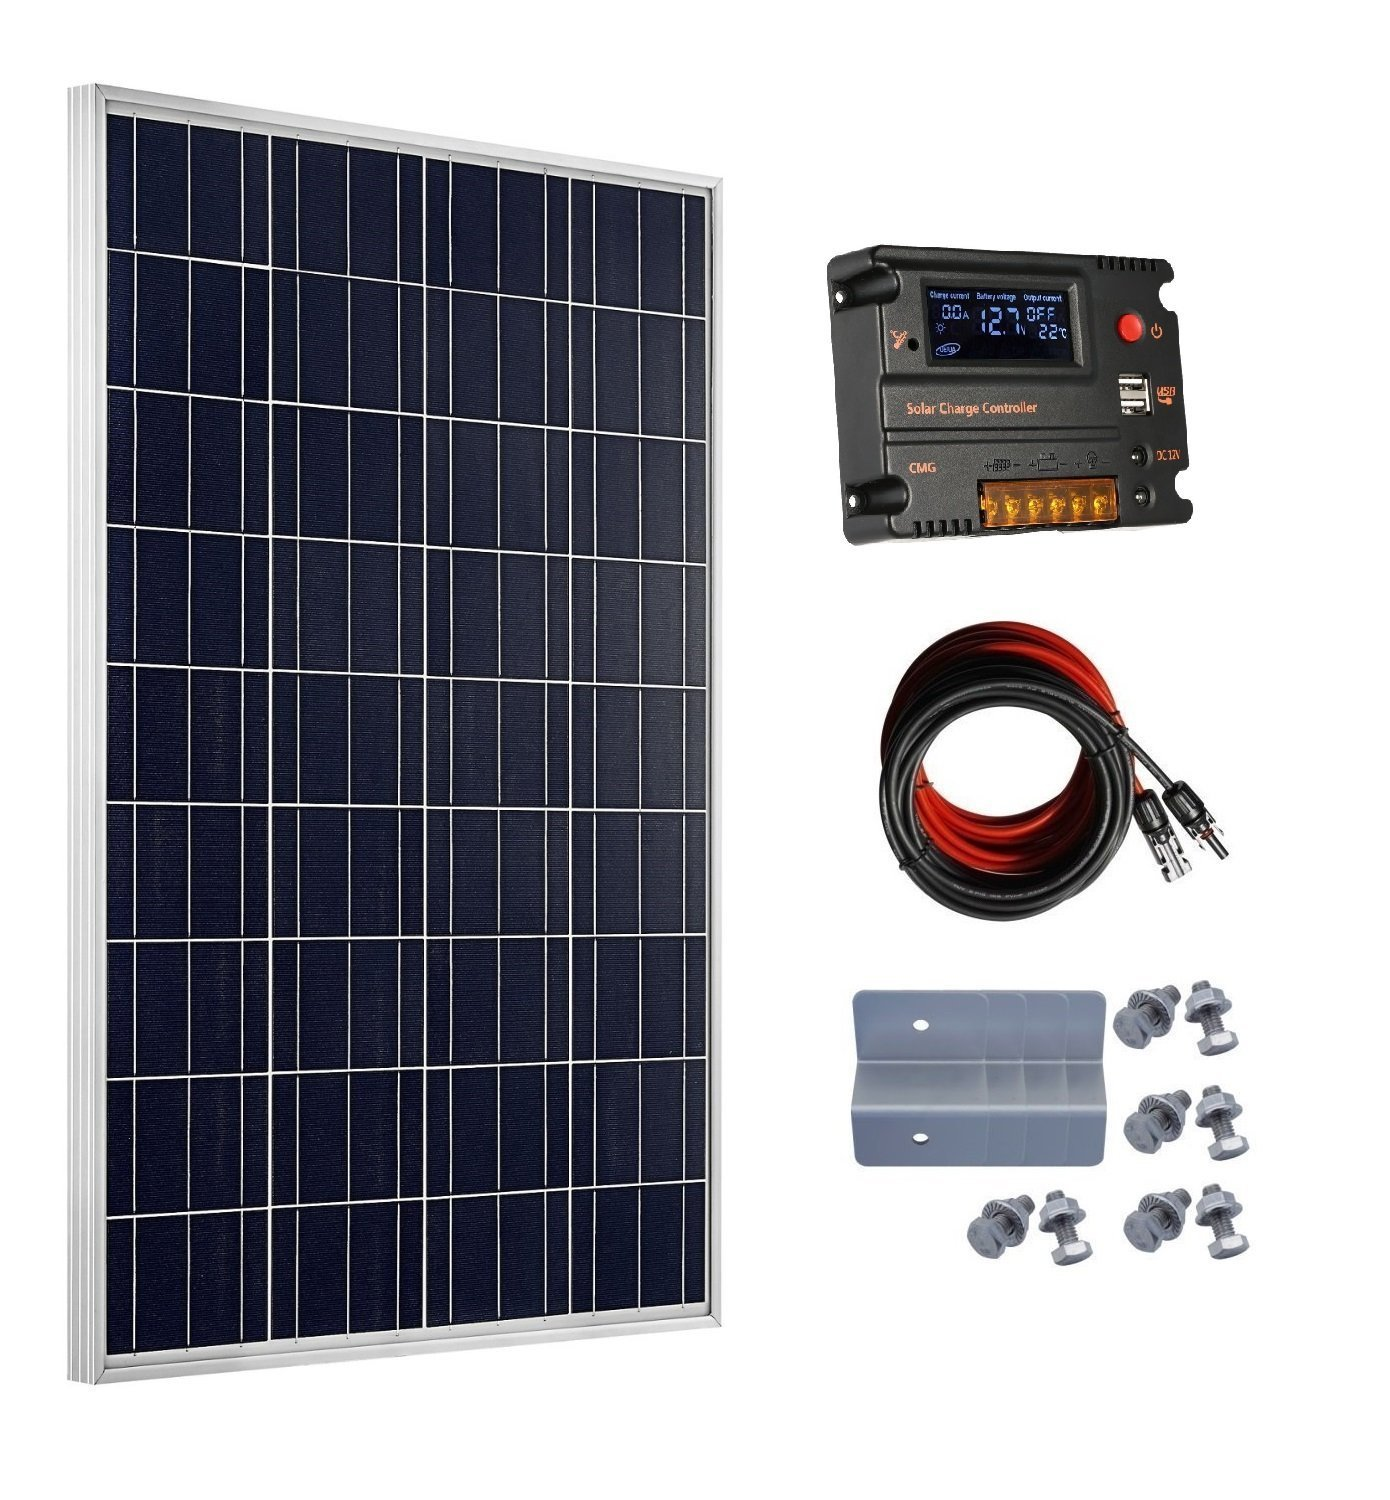 ECO-WORTHY 12 Volt 100 Watt Monocrystalline Solar Starter Kit: 1pc 100W Mono Solar Panel + 20A LCD Solar Controller + 30Ft Solar PV Cable with MC4 Connectors + Z Mounting Brackets L02M100-LCD-1